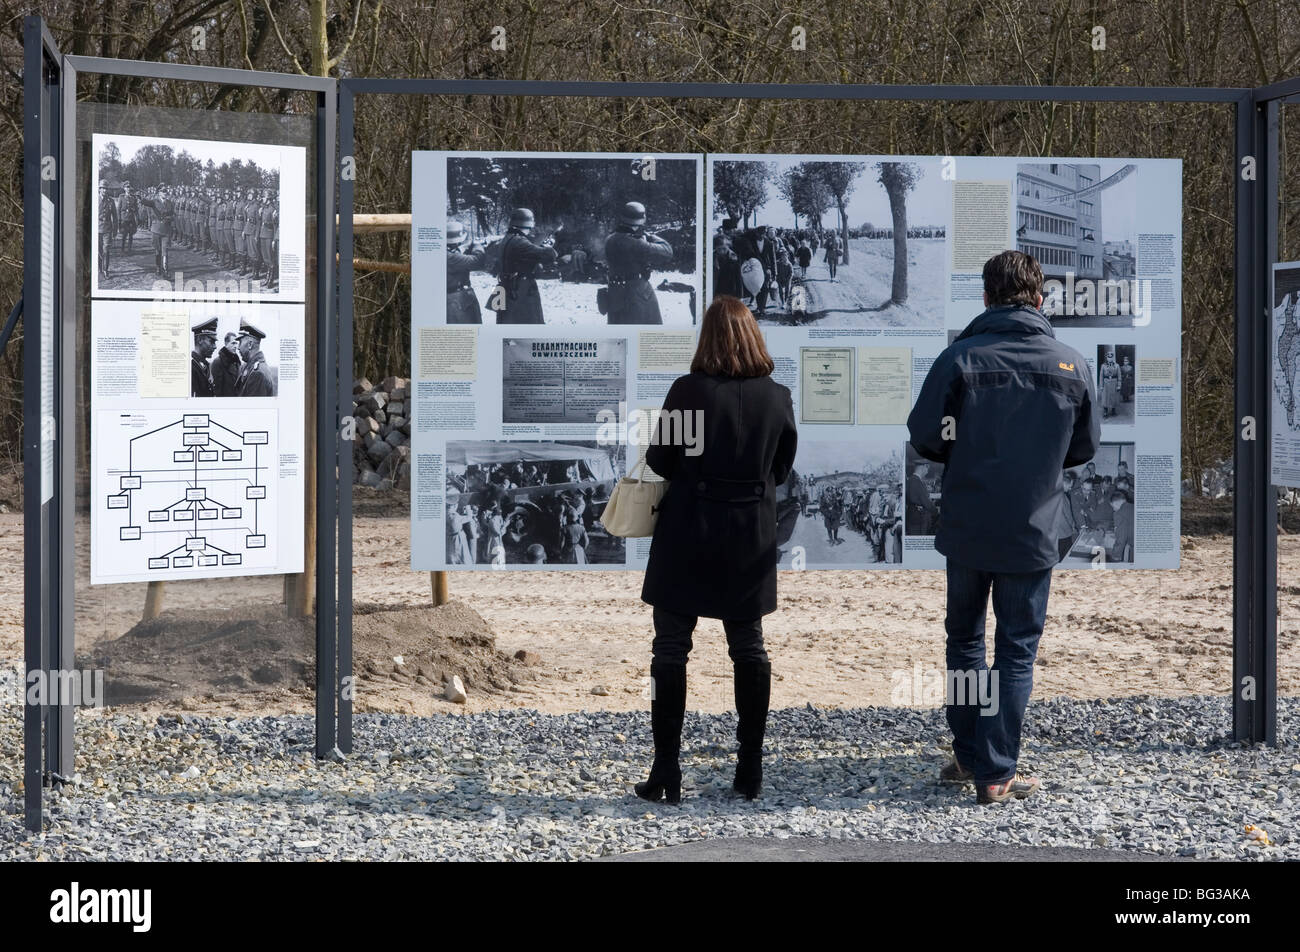 Jew Holocaust execute terror Nazi Gestapo SS Hitler museum remember Himler Berlin 2009 1989 DDR Germany Unified - Stock Image